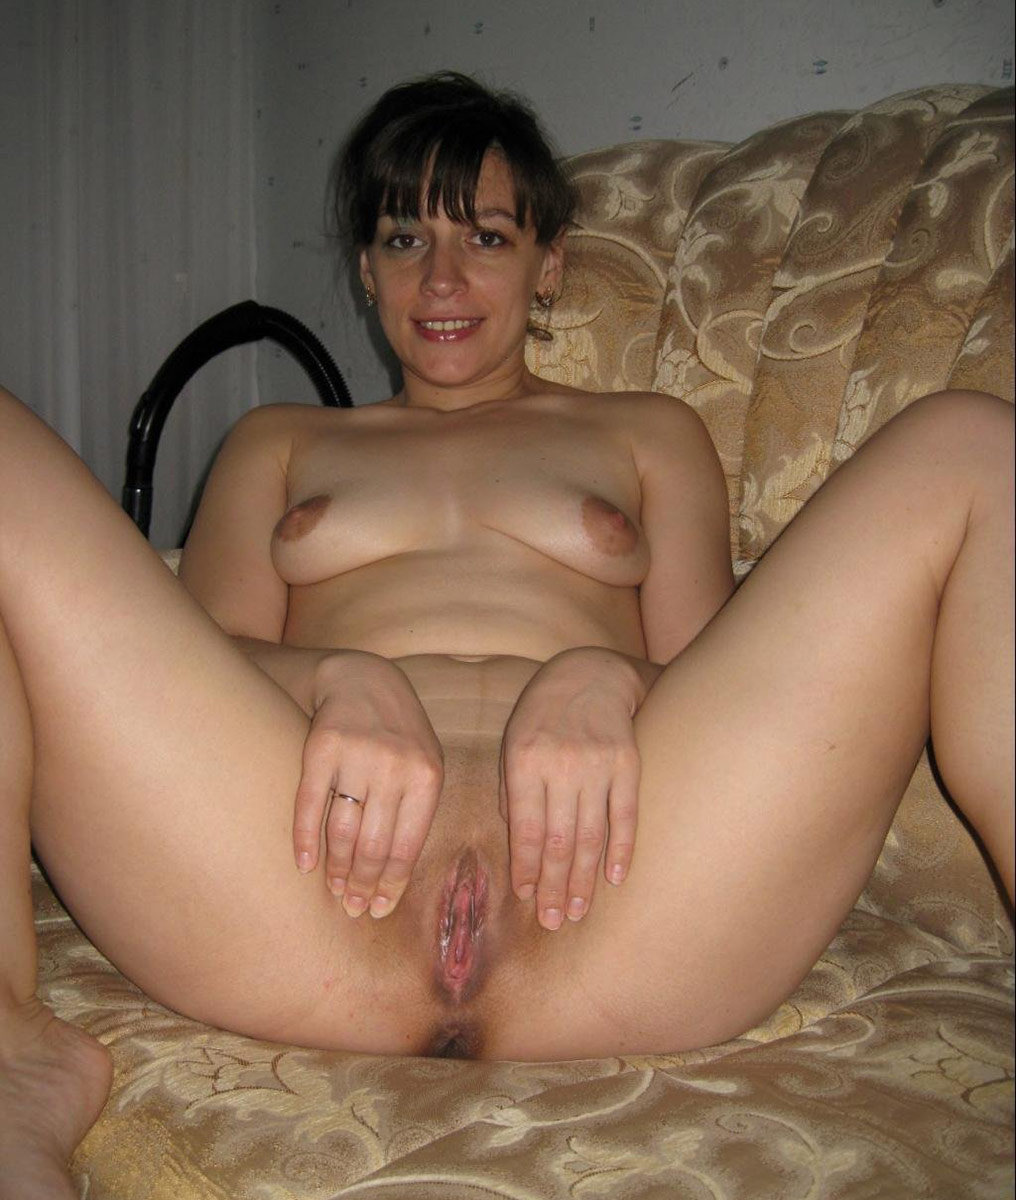 erotic neice pictures